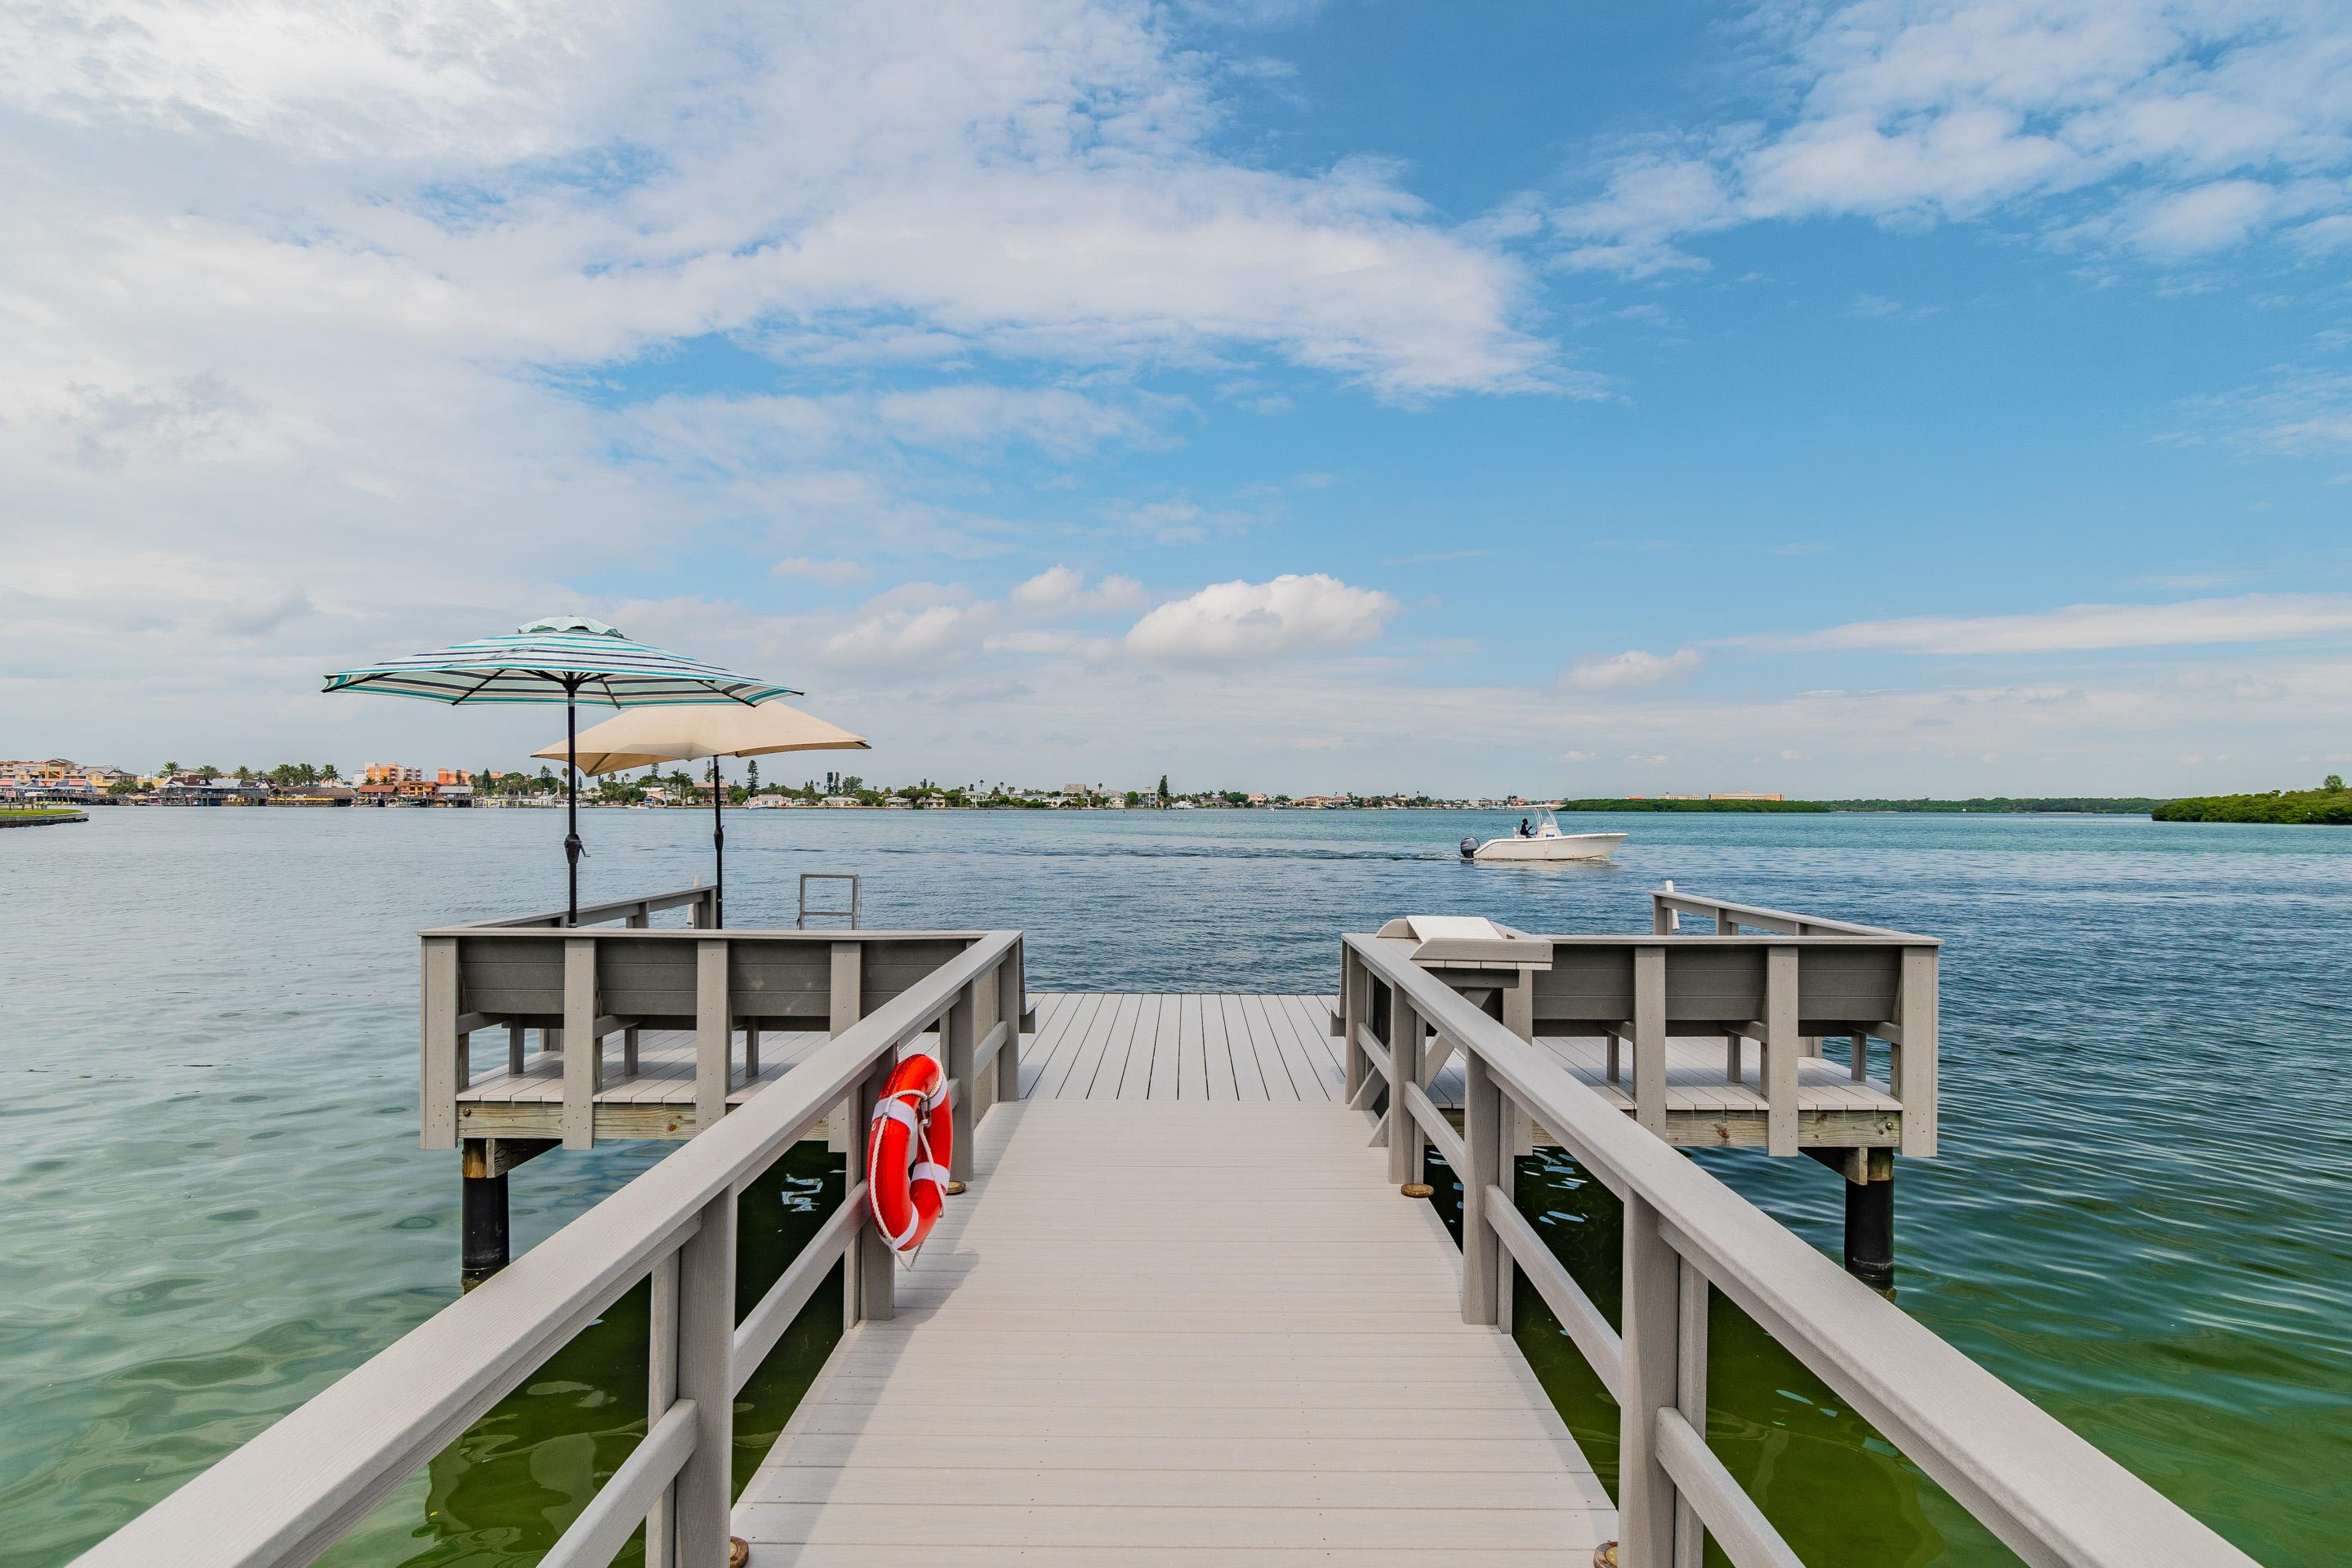 Property Image for 250 126th Ave # 105